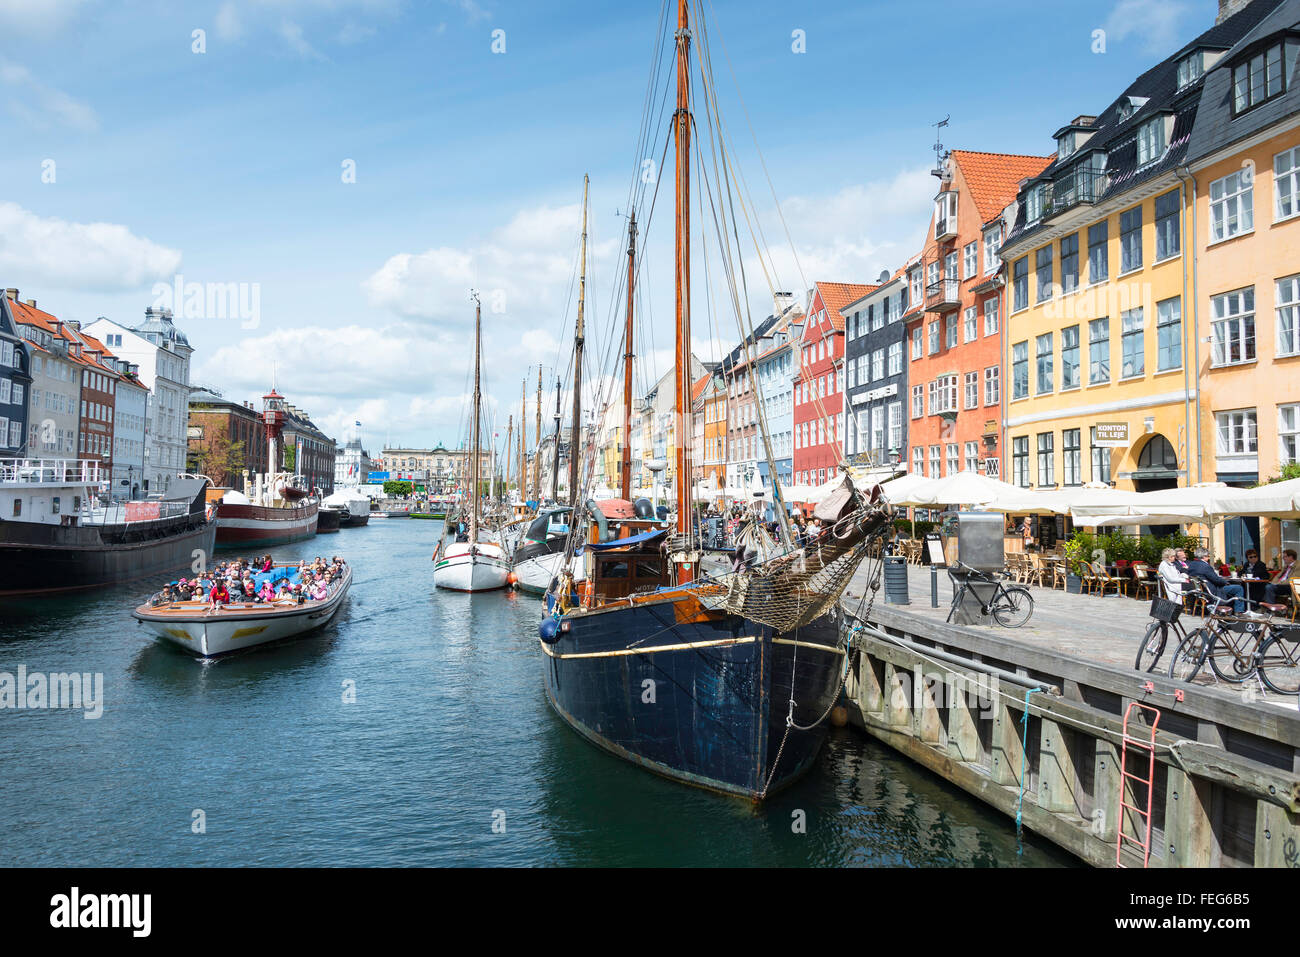 Sightseeing cruise boat on 17th century waterfront, Nyhaven Canal, Copenhagen, Hovedstaden Region, Kingdom of Denmark - Stock Image